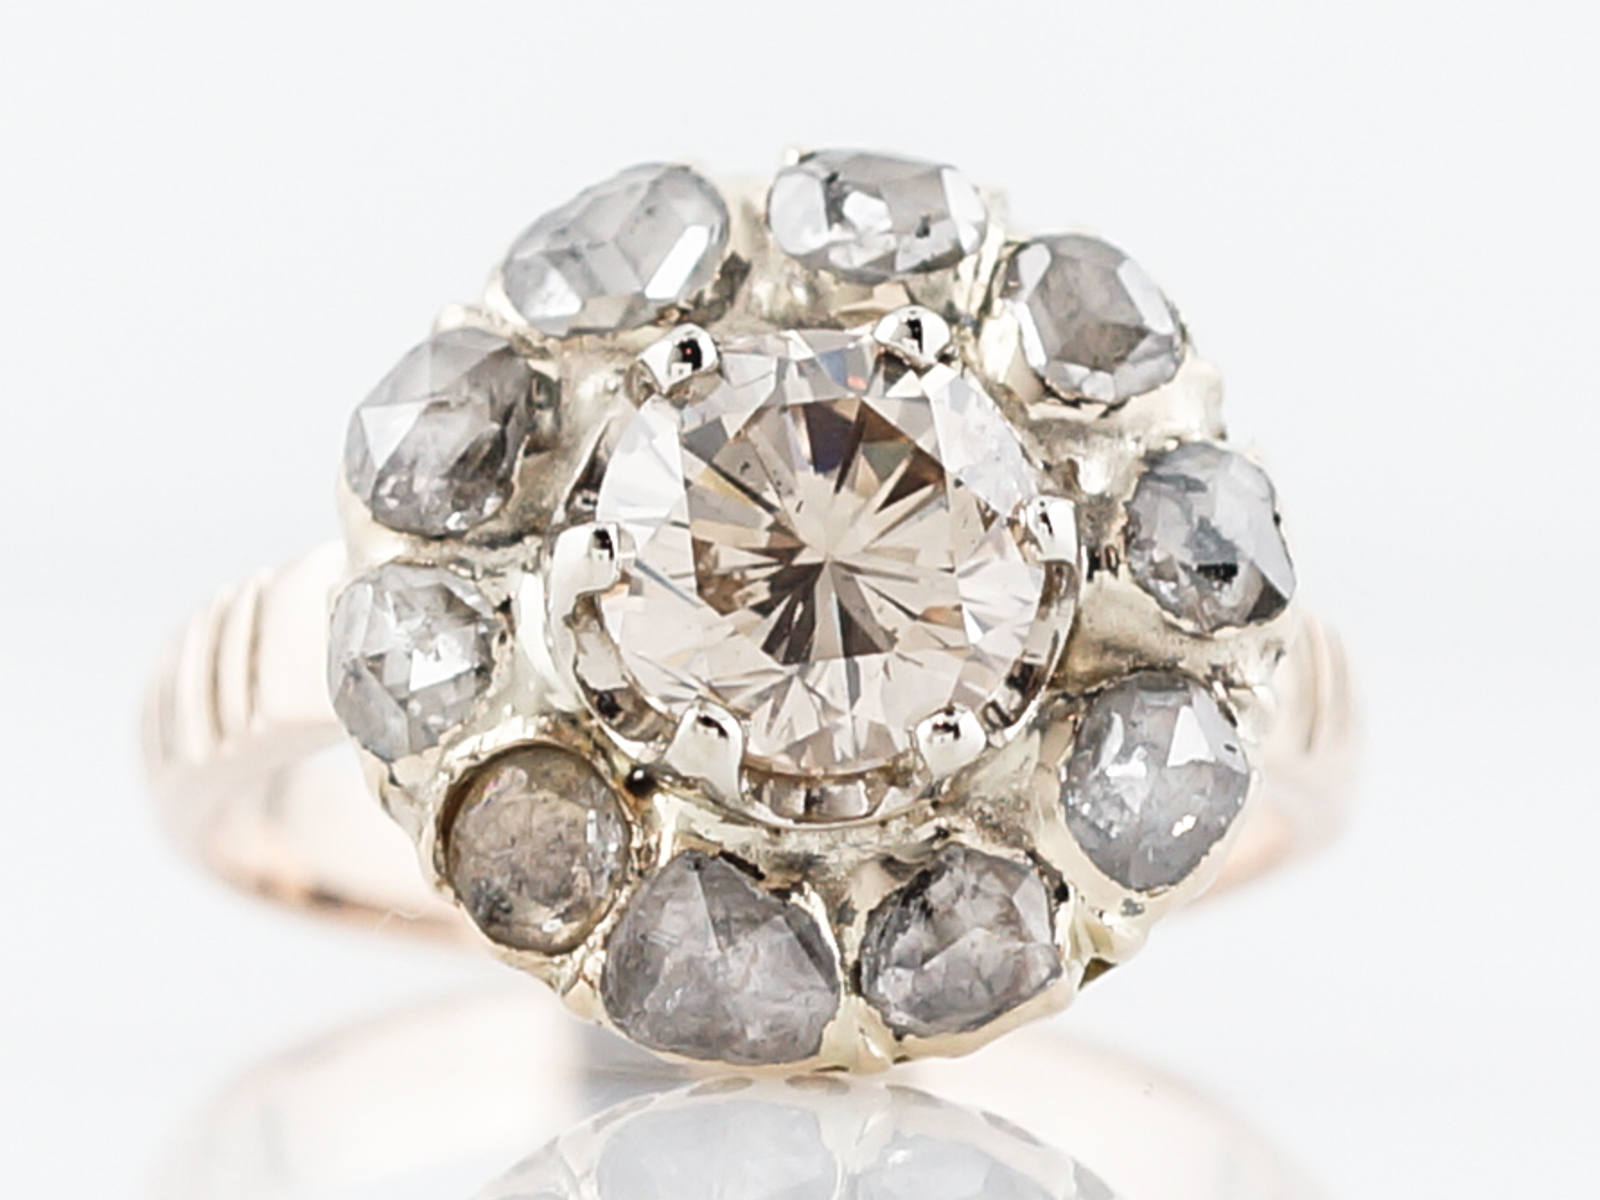 Antique Right Hand Ring Victorian 1.03 Round Brilliant Cut Diamond in 10k Yellow Gold-1